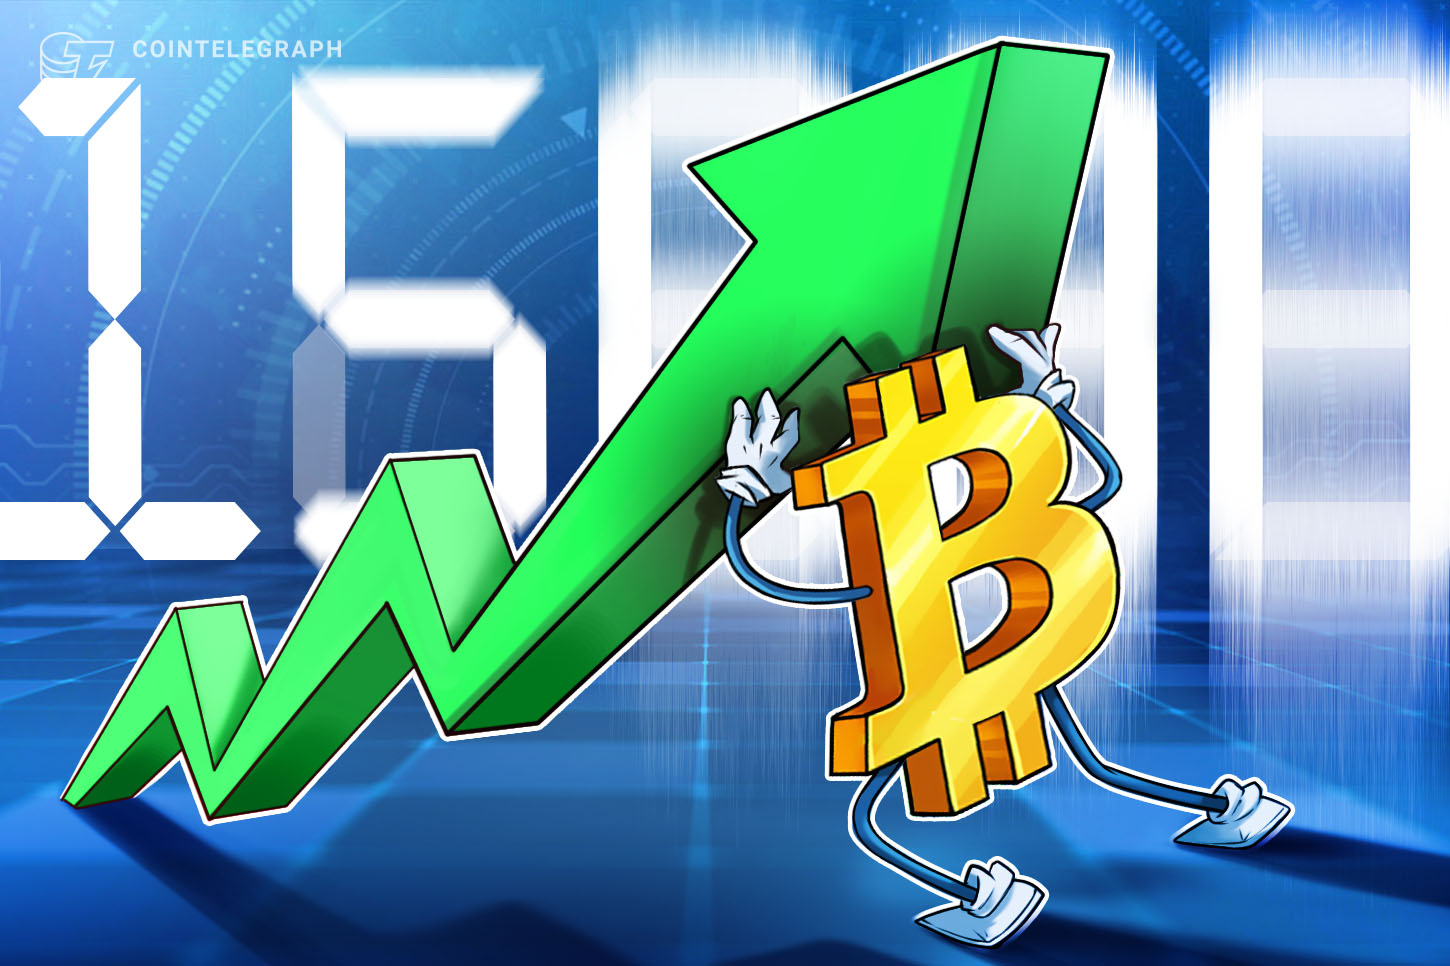 Bitcoin price outlook still bullish despite drop from COVID-19 vaccine news